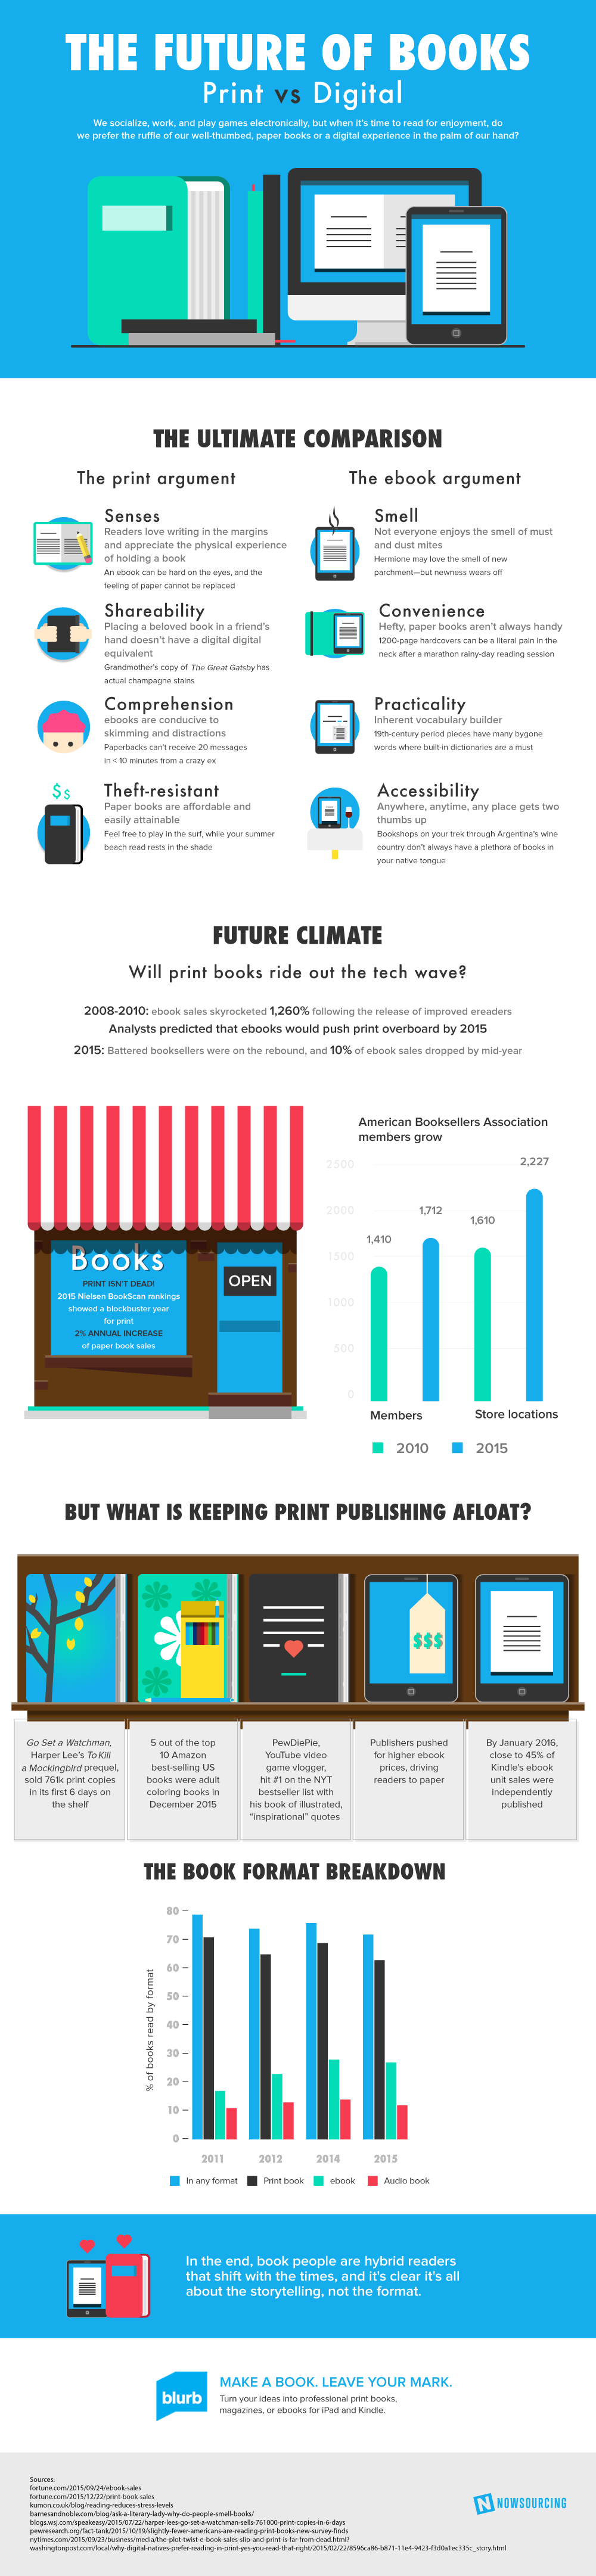 The Future Of Books Print Vs Digital